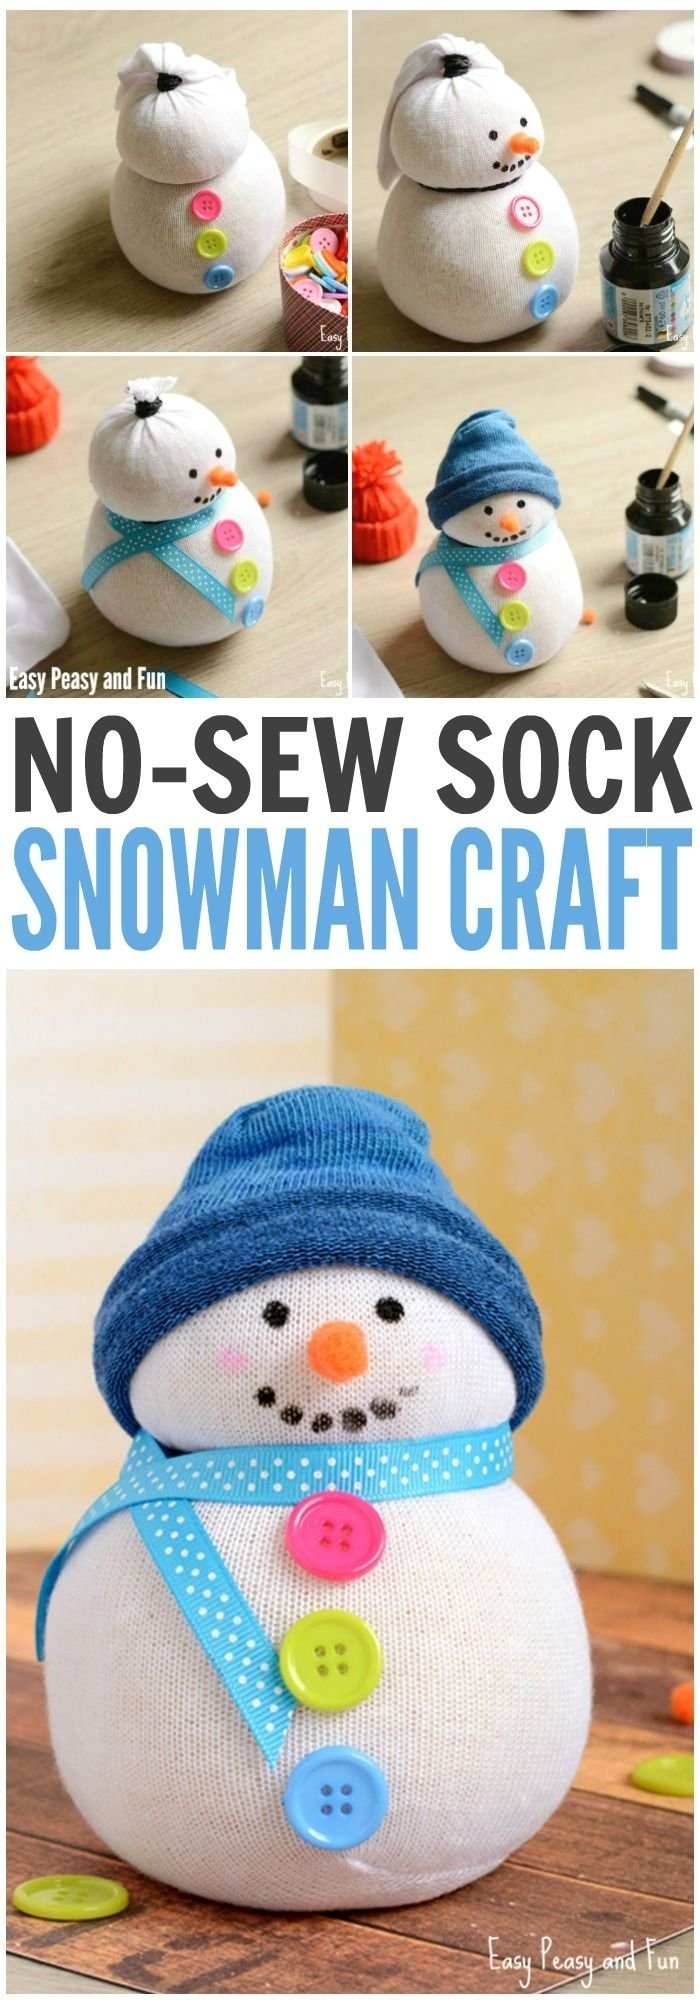 10 Most Popular Kids Christmas Craft Gift Ideas no sew sock snowman craft sock snowman snowman crafts and fun diy